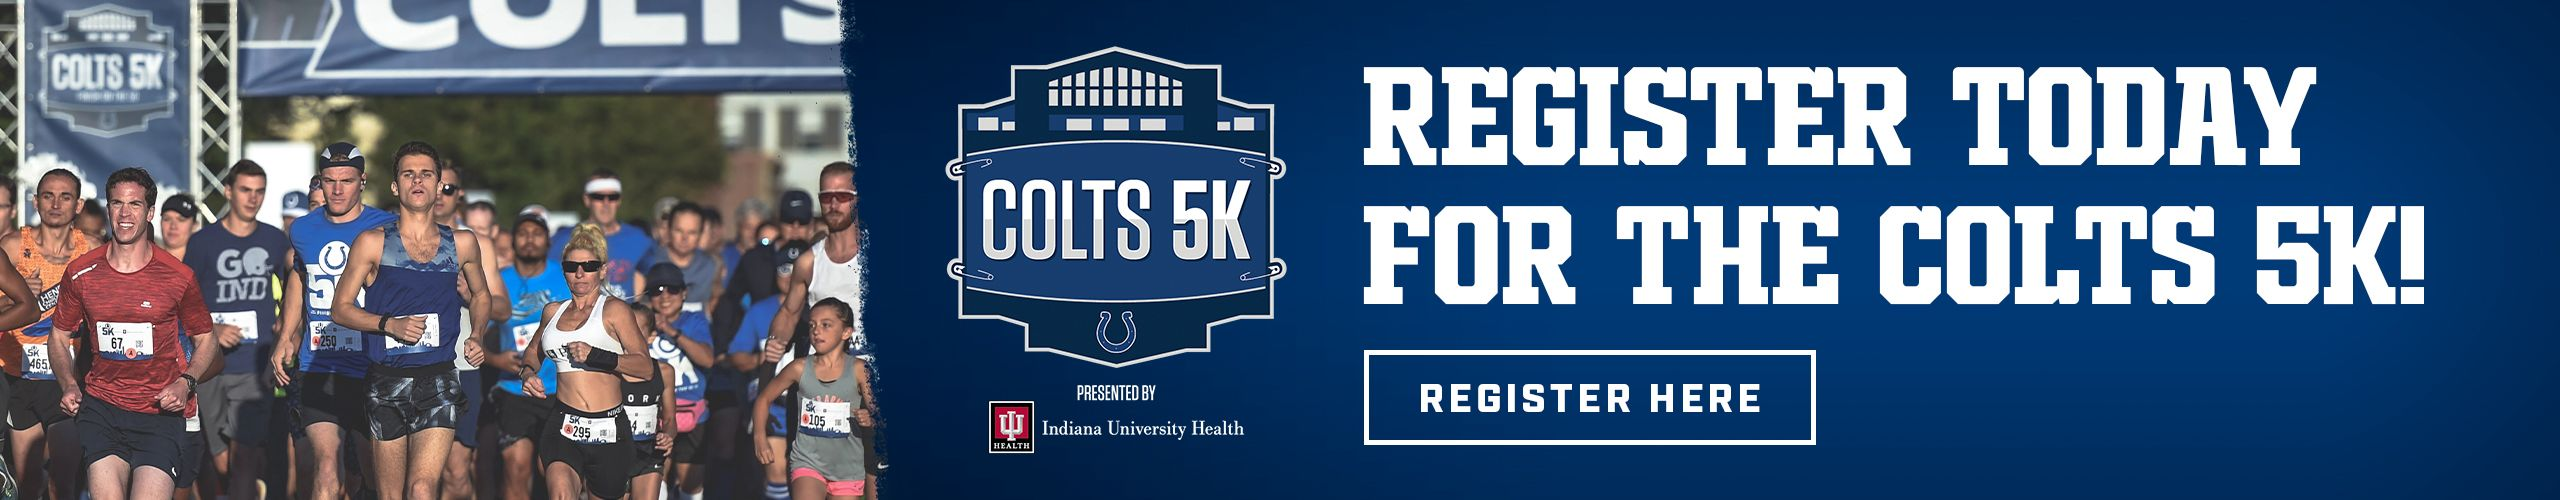 Colts 5K Presented By Indiana University Health  Register Today For The Colts 5K  Register Here